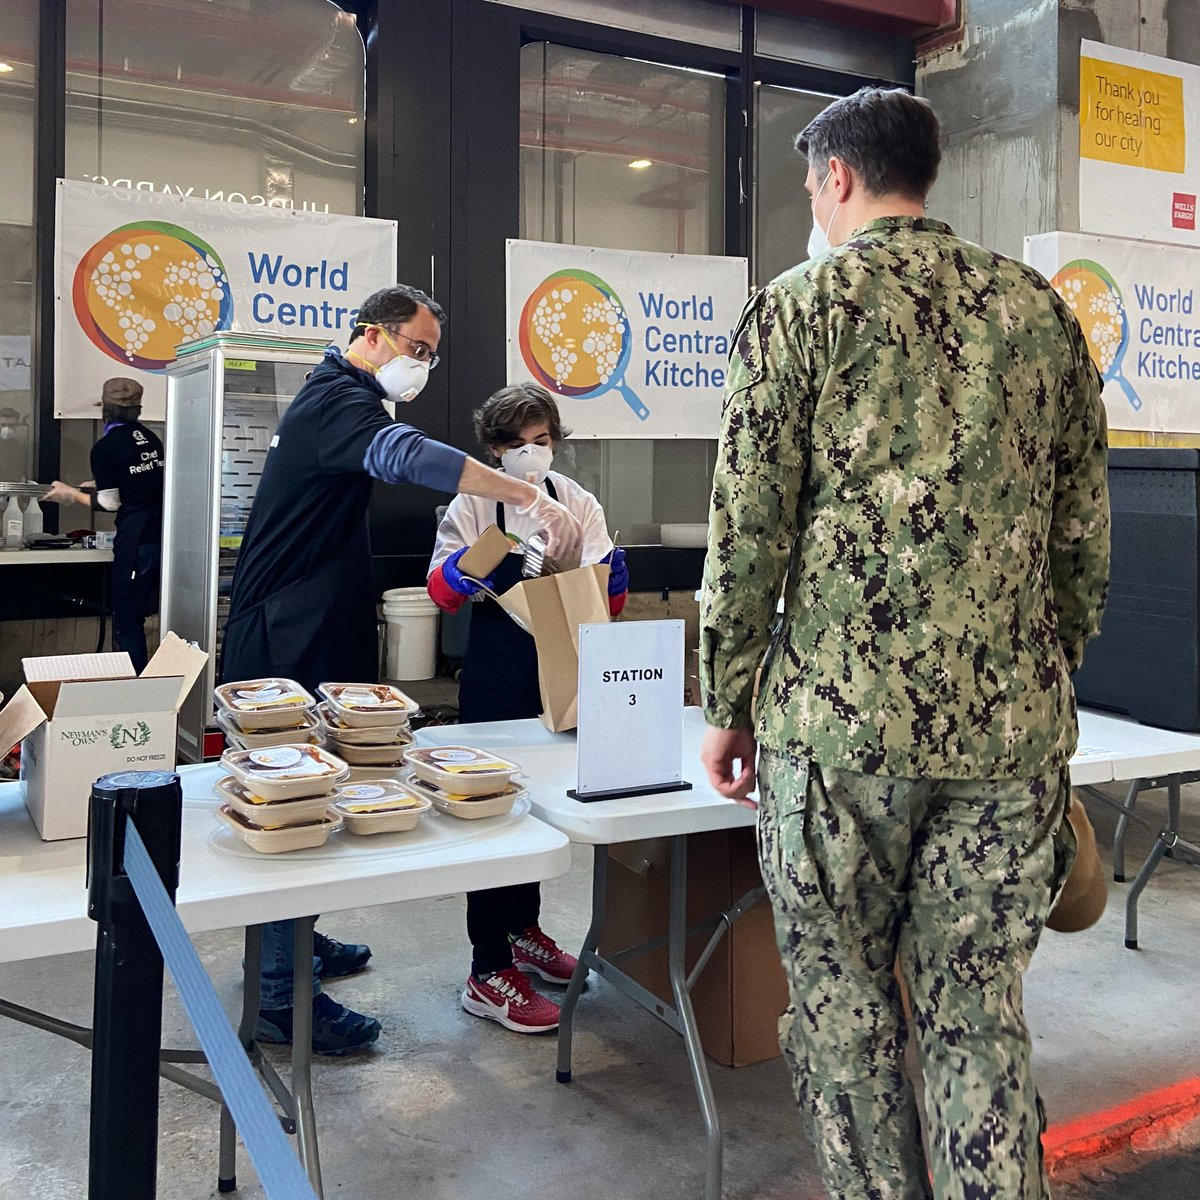 Over $1.5M raised and over 30,000 meals served to our heroes at the @WCKitchen outpost at 55 Hudson Yards. Help us continue to feed our heroes by supporting HY❤️WCK at bit.ly/ReliefOnTheHud…